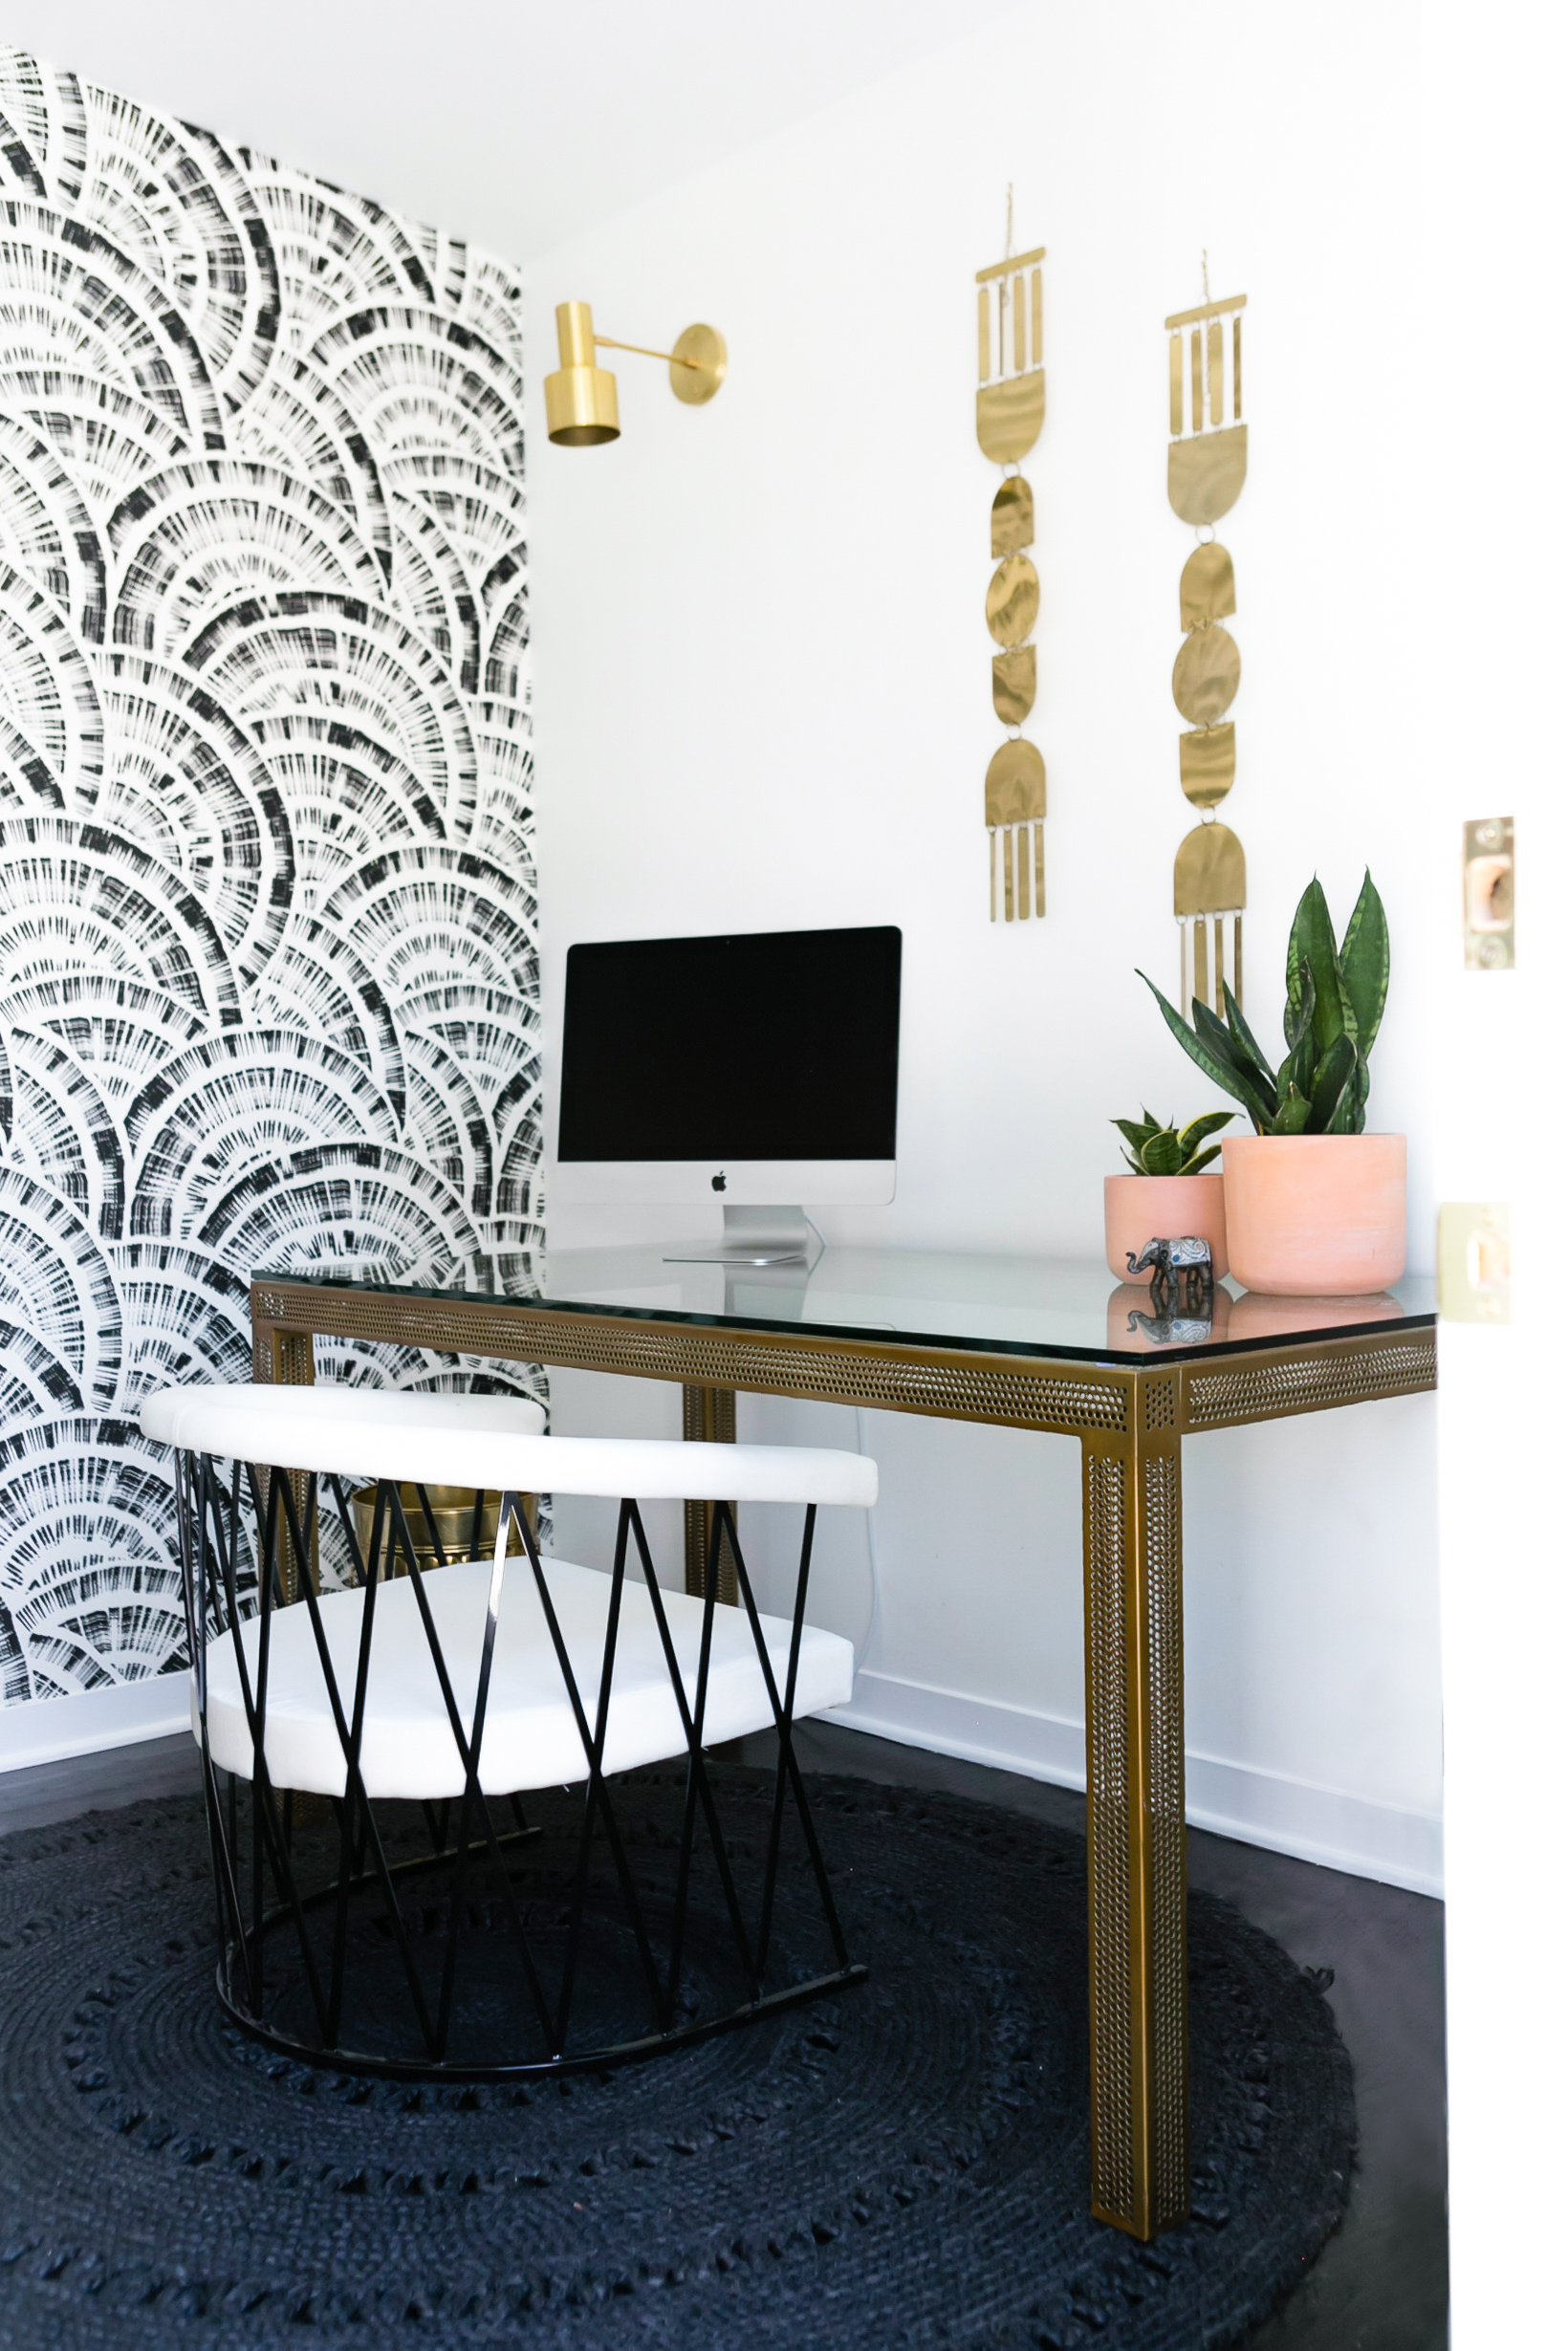 The Home Office - Notably cleaner than my actual office (LOL) I wanted to use this room to create a small little work sanctuary in the home for those weekends where I have to crank out some emails! The color palette was focused around black and gold which was perfect for CB2's collection. The wall hanging is from Target Style and part of the Nate Berkus collection.